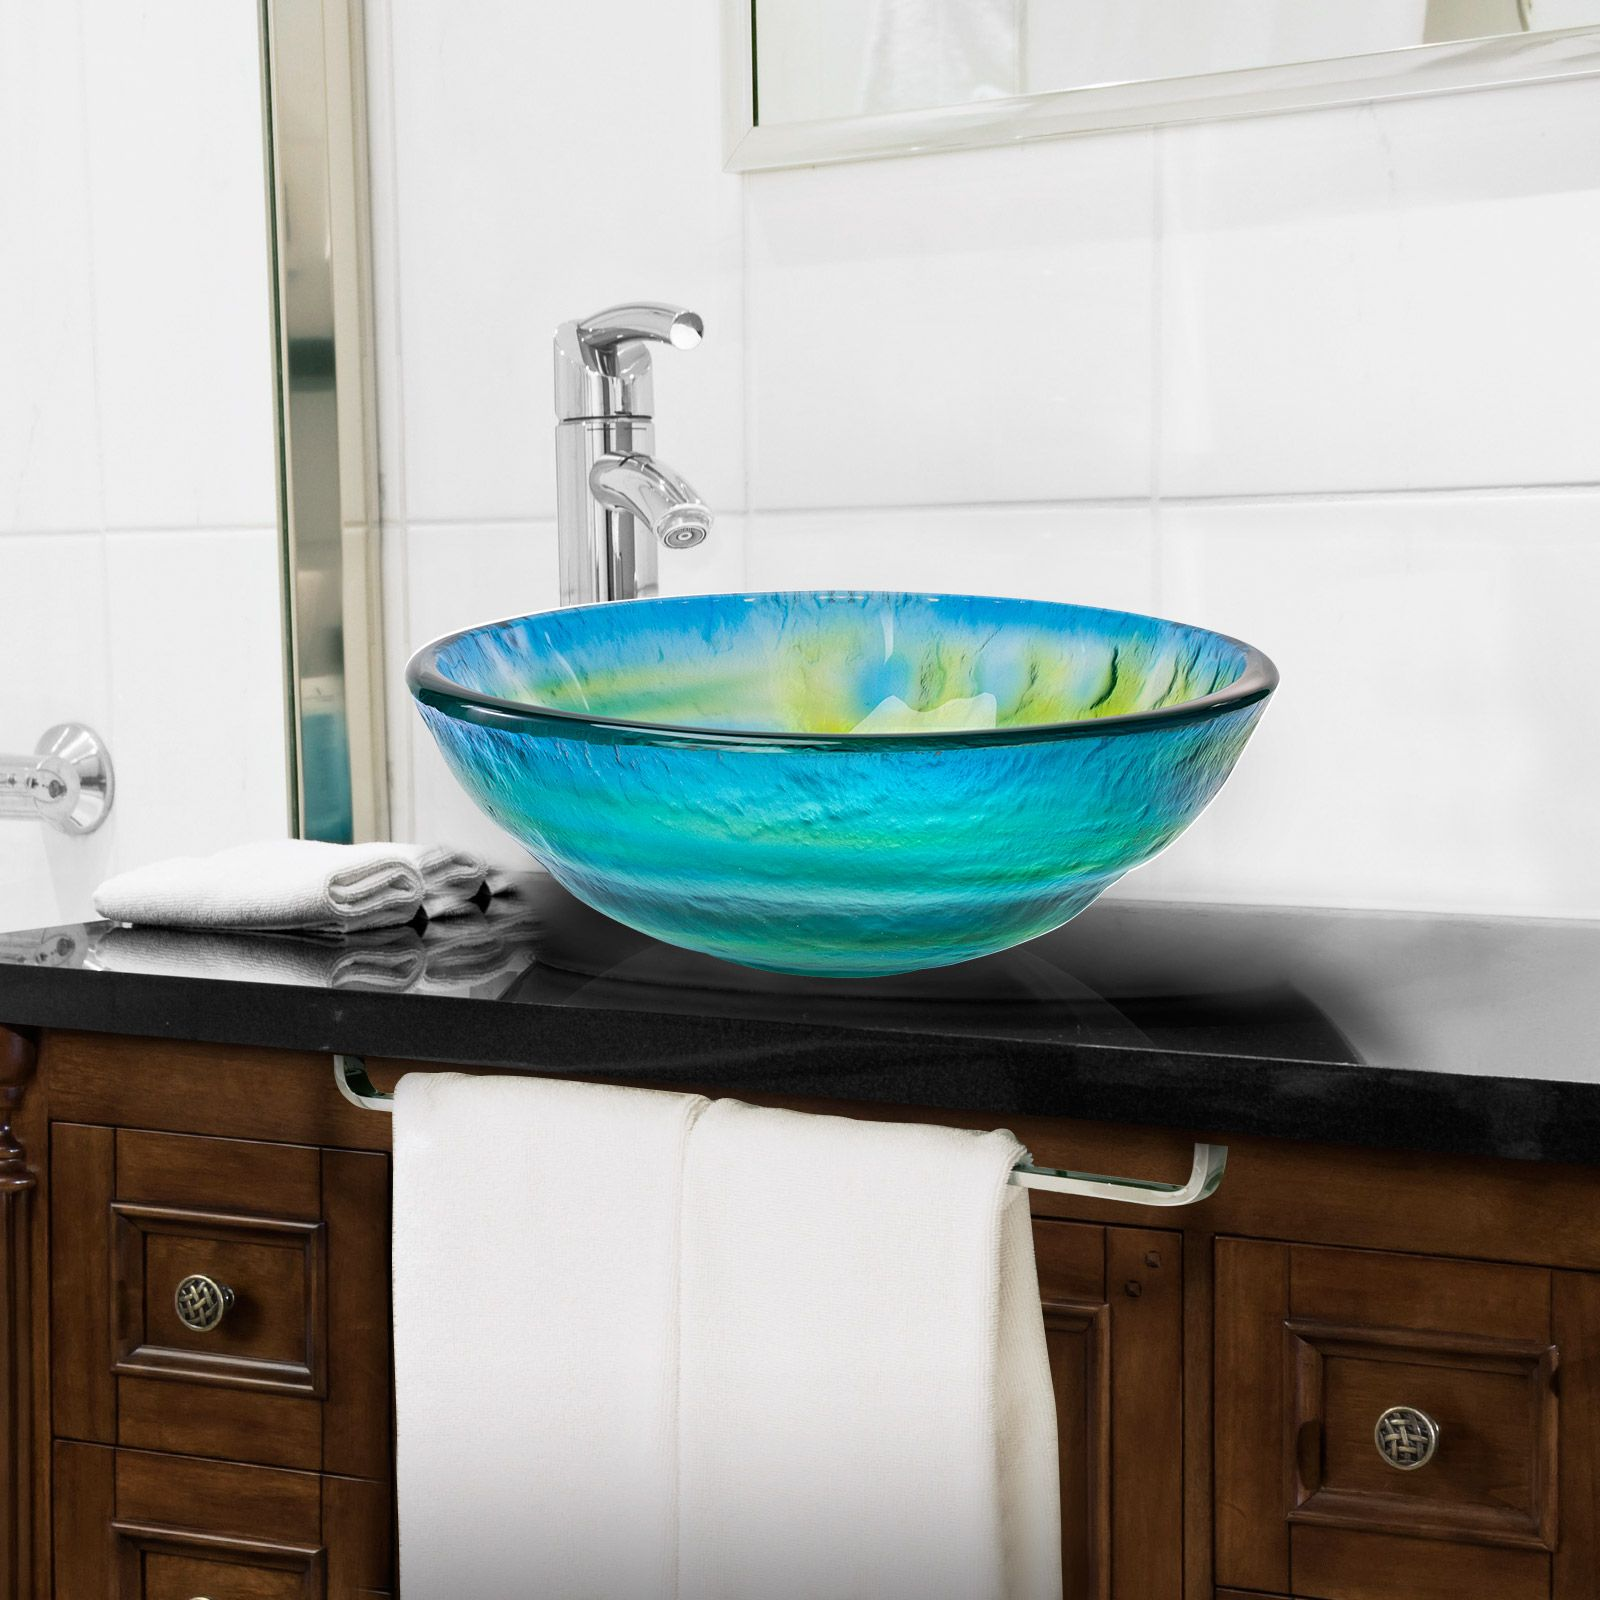 Home With Images Glass Vessel Sinks Vessel Sink Bowls Vanity